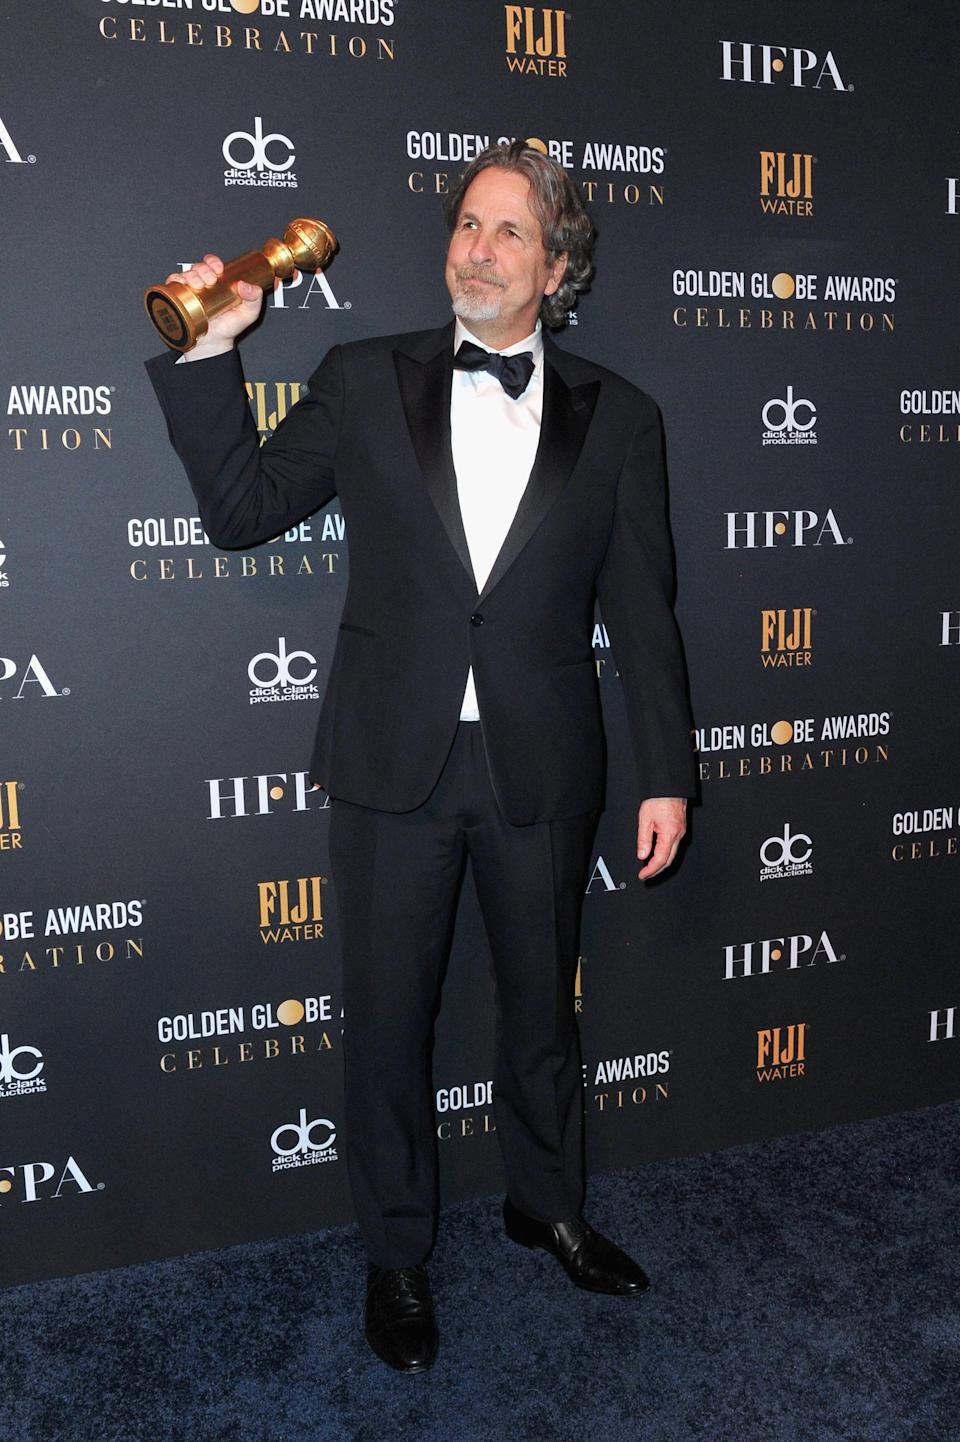 Peter Farrelly (Credit: Rachel Luna/Getty Images)